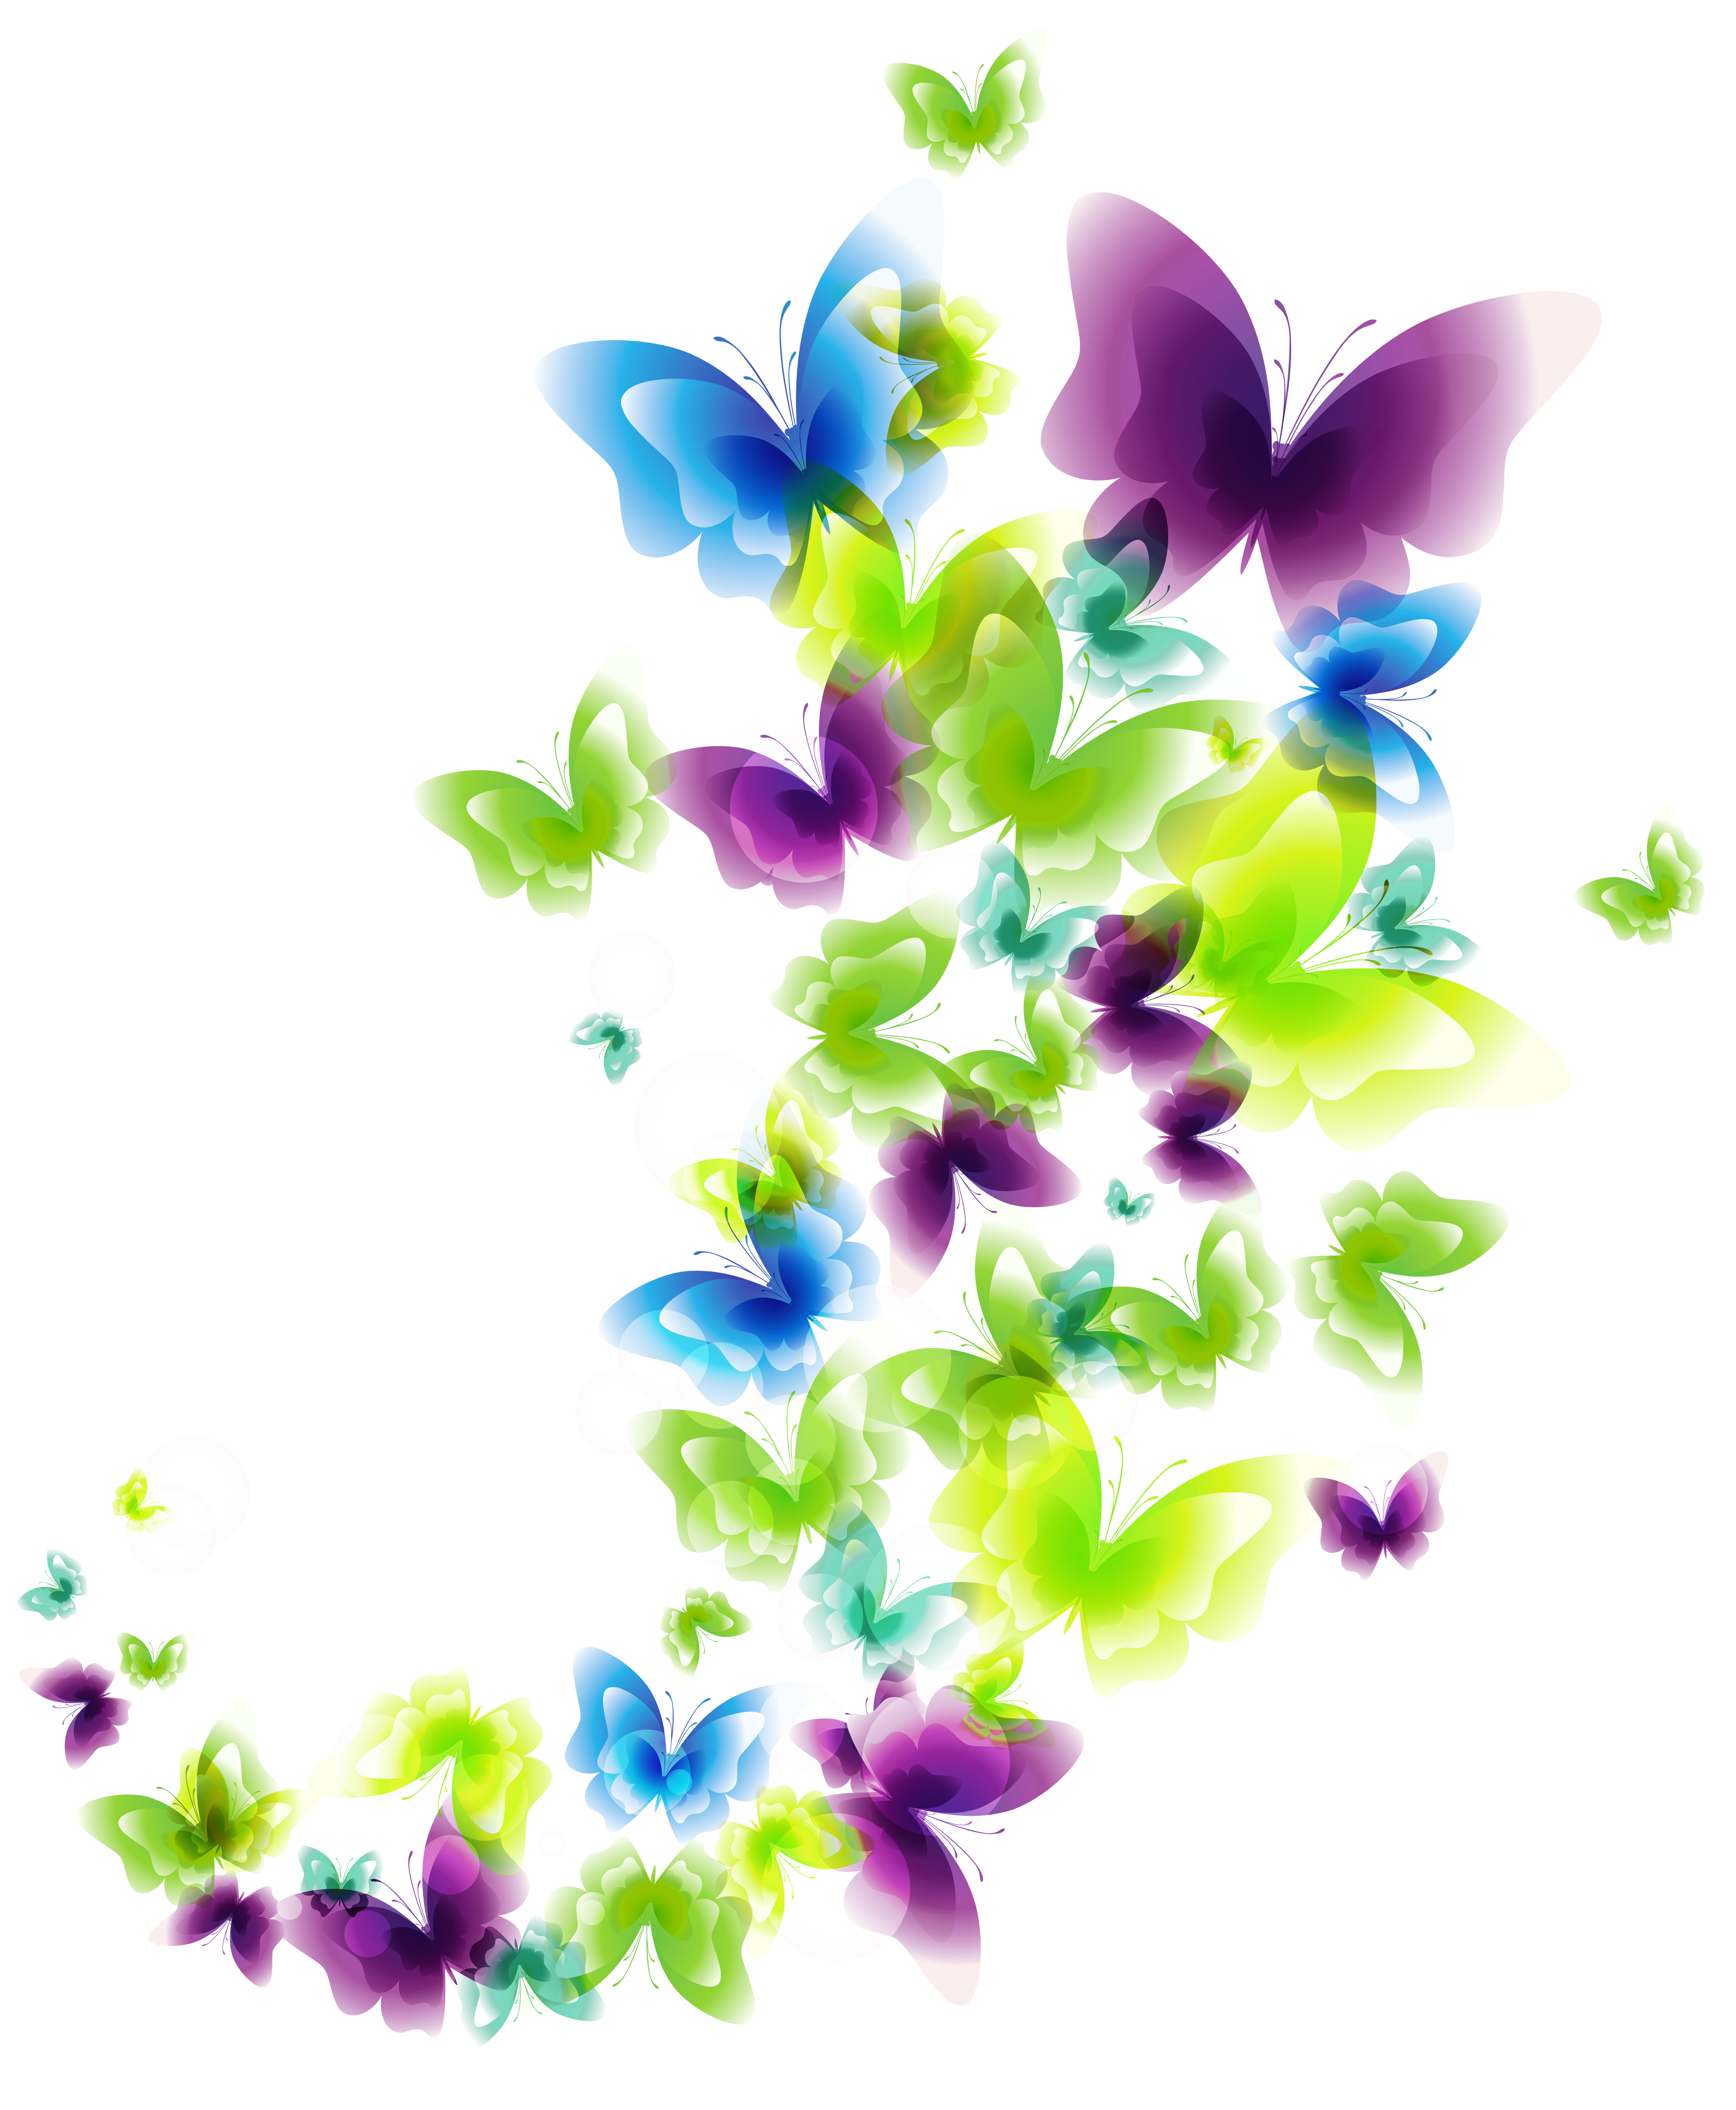 Heart and butterfly clipart jpg freeuse download Deco Butterflies PNG Clipart Picture | Gallery Yopriceville - High ... jpg freeuse download